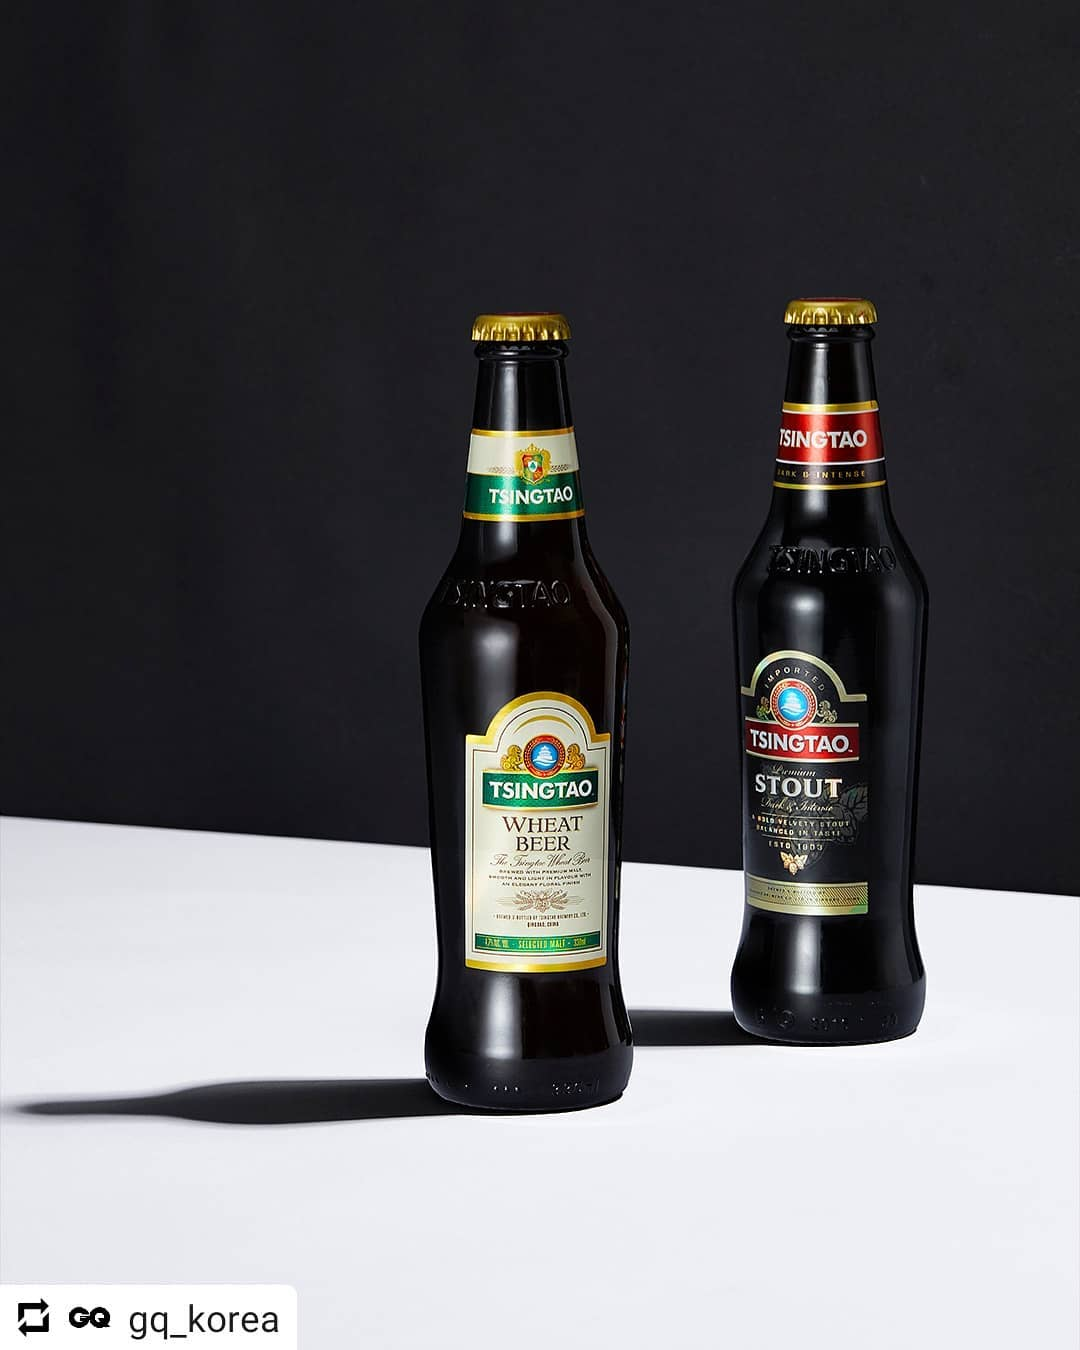 https://tsingtaobeer.ca/wp-content/uploads/2019/08/product_wheat_beer.jpg